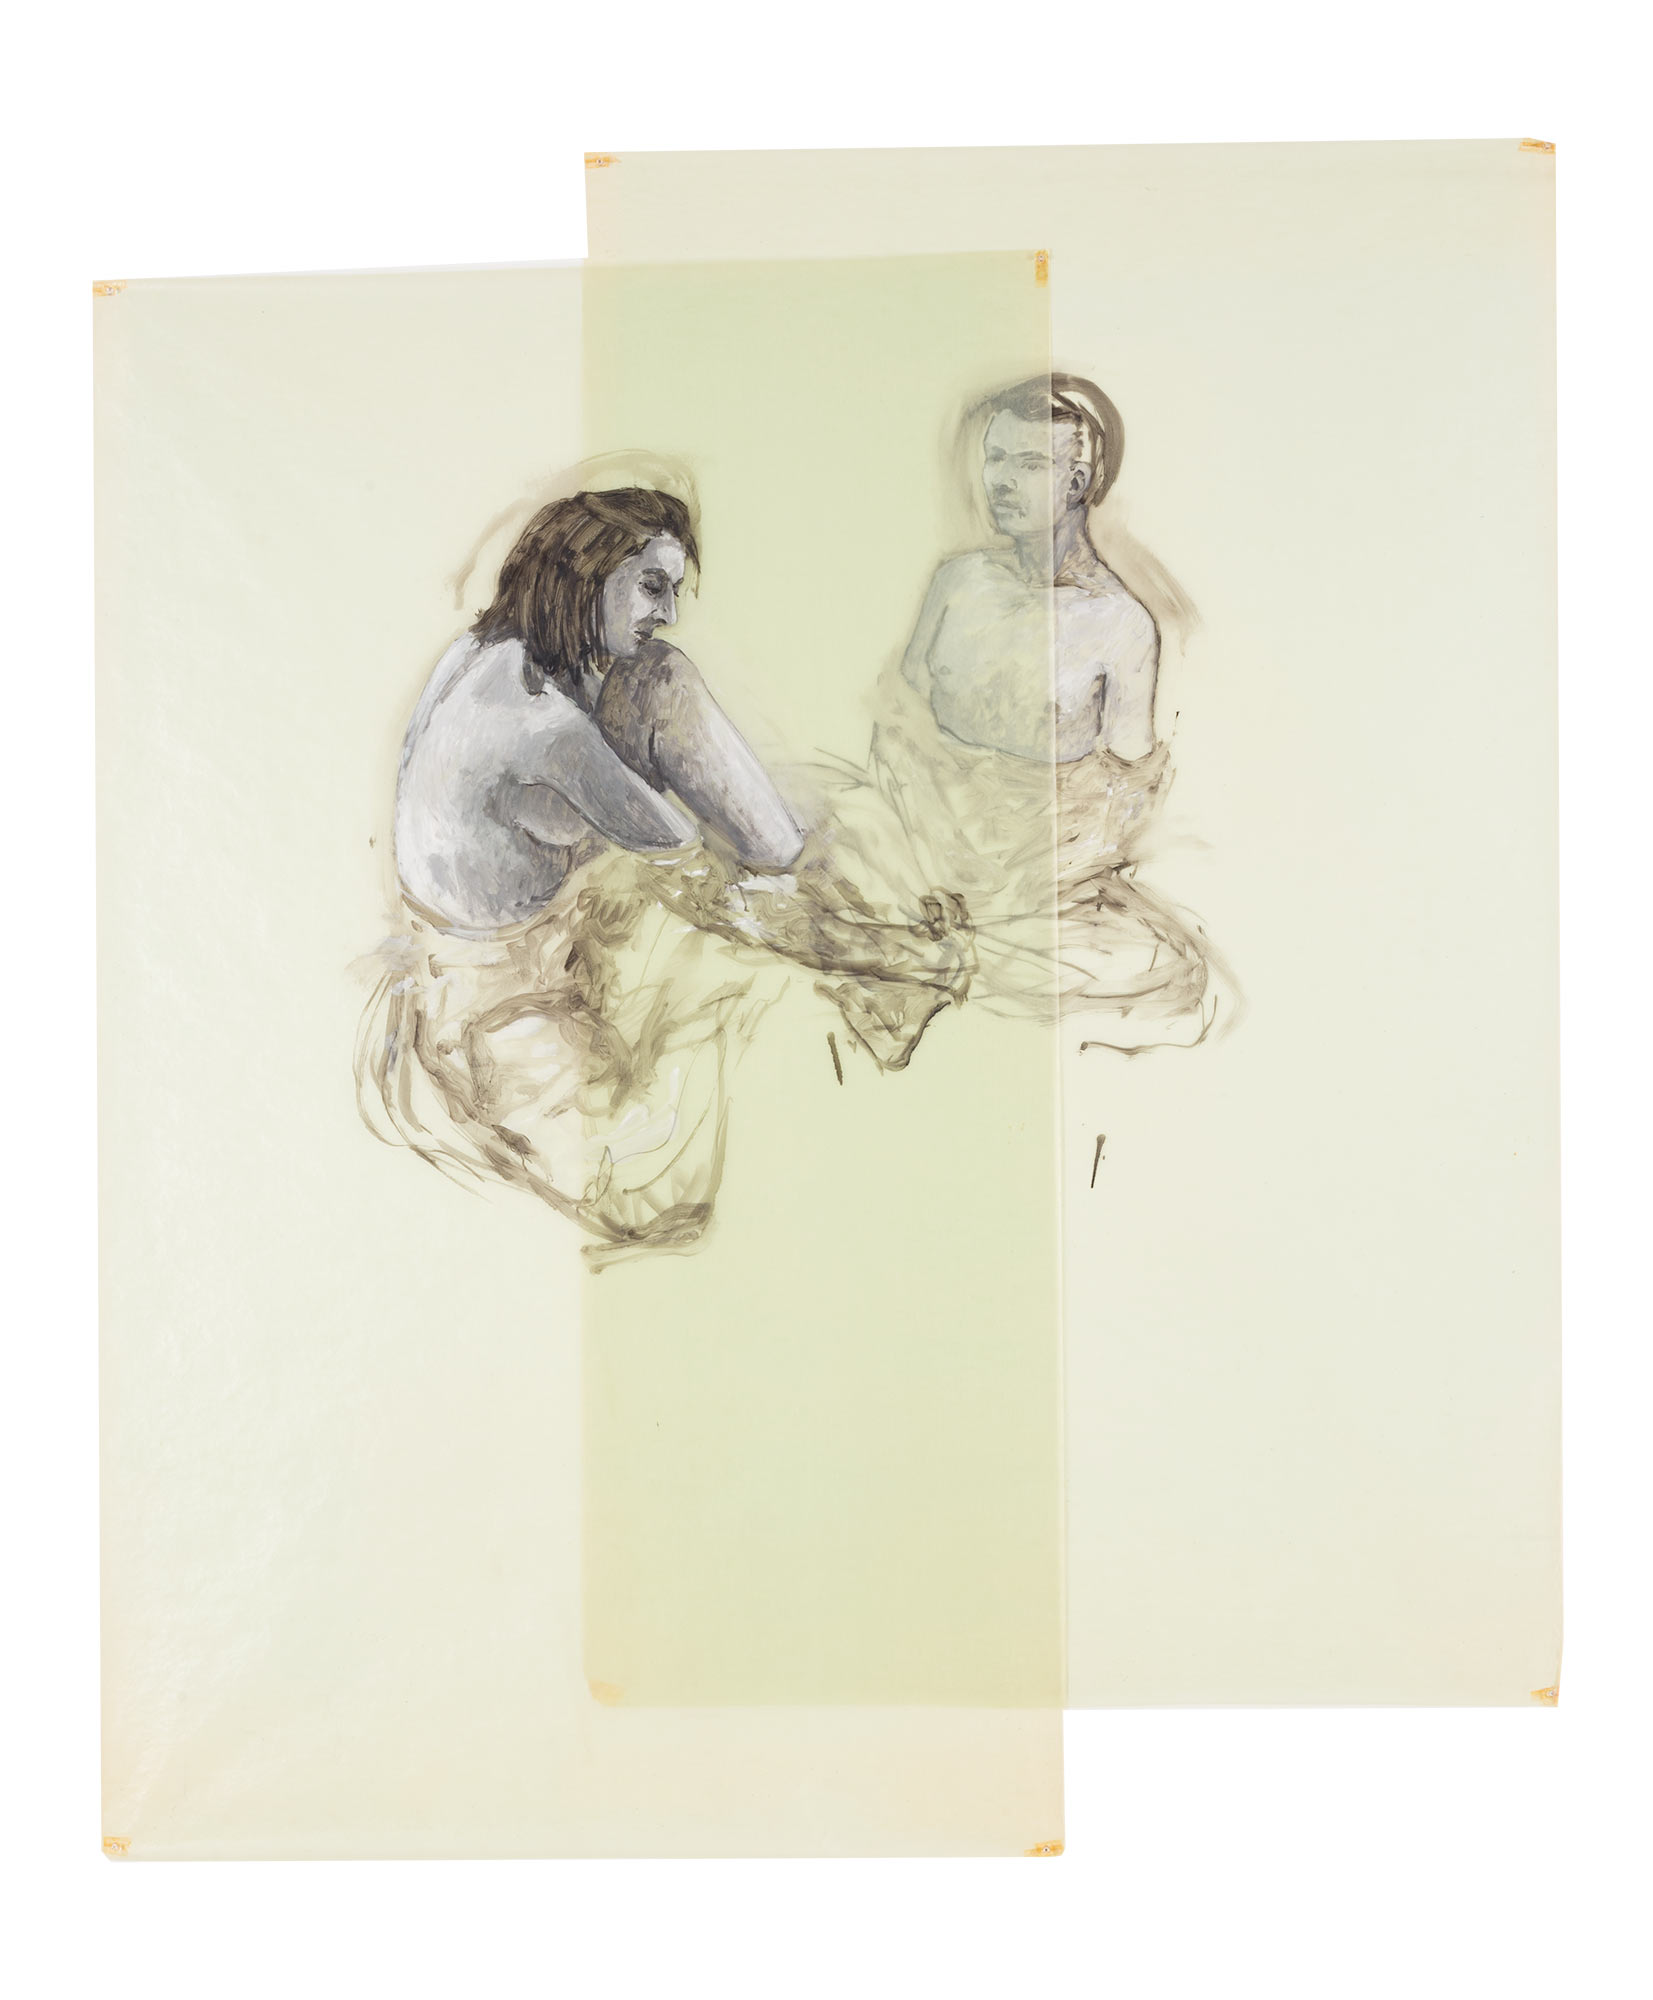 Two Girls Sitting in Water, 1980. Oil on Glassine. 84 x 72 1/4 in. (213 x 184 cm.)